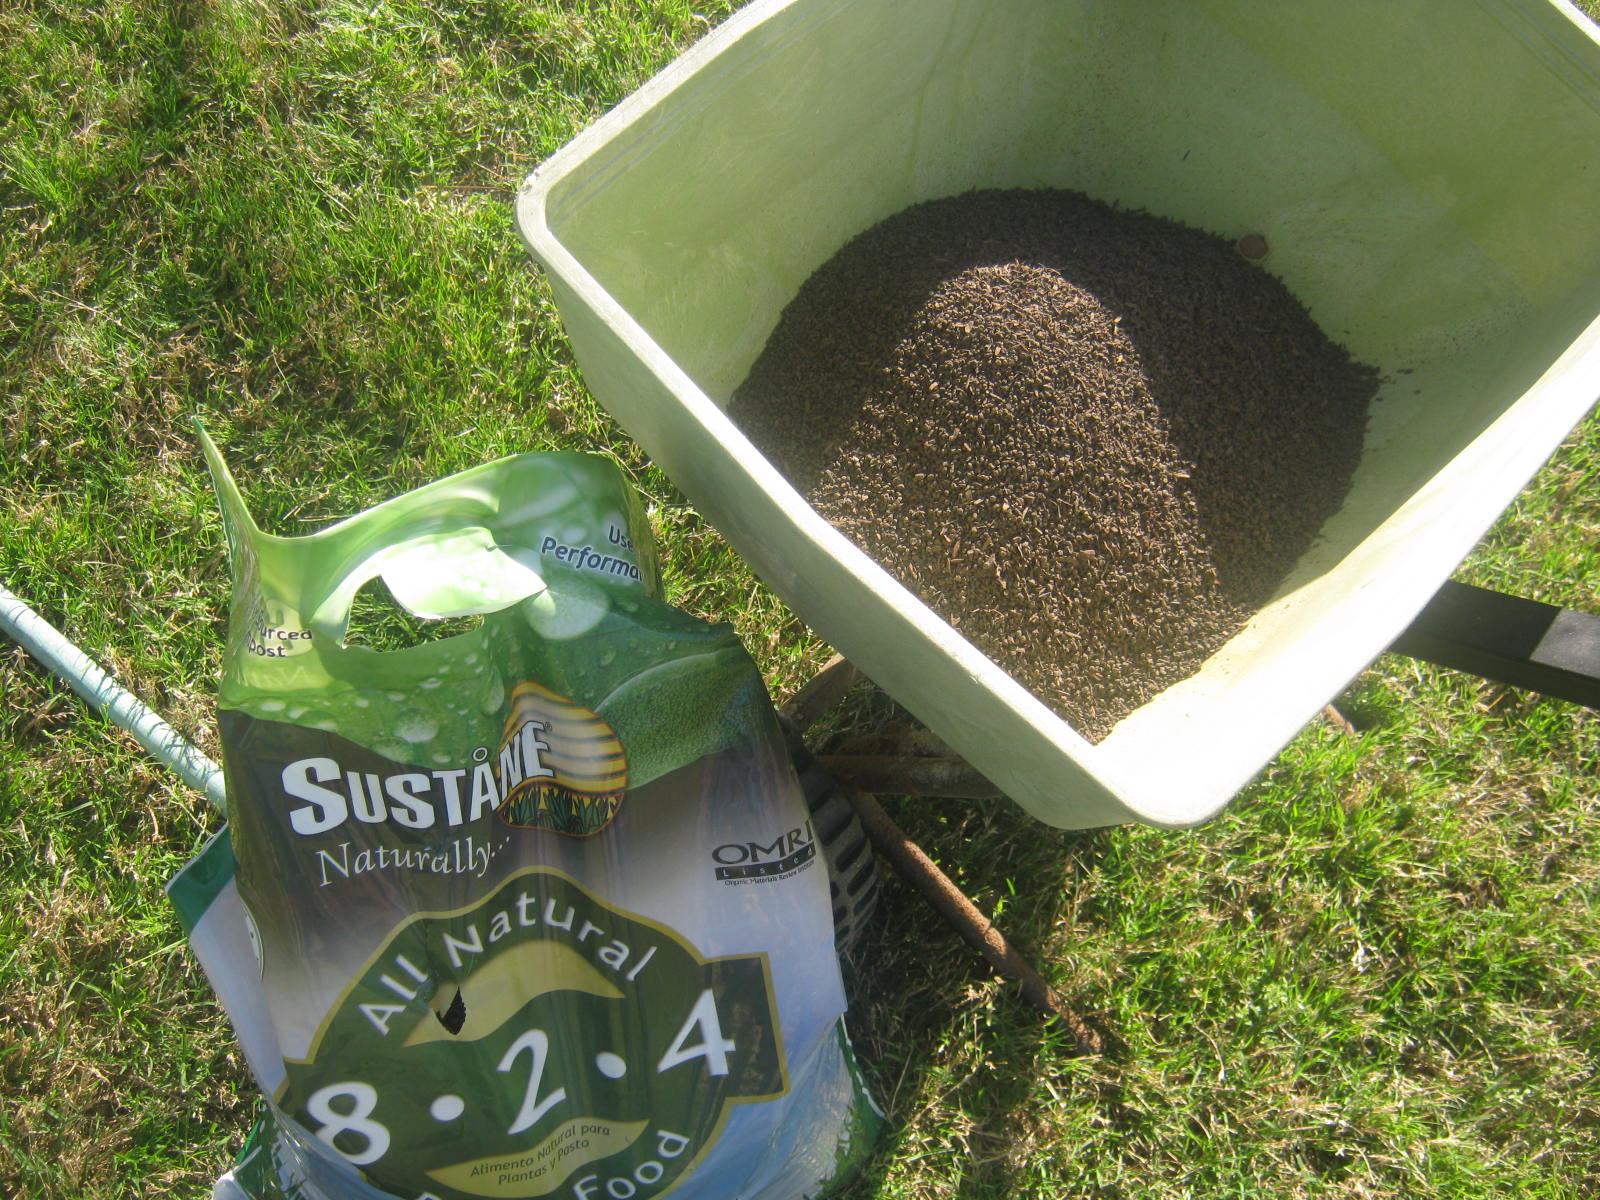 lawn-fertilizer-003.jpg